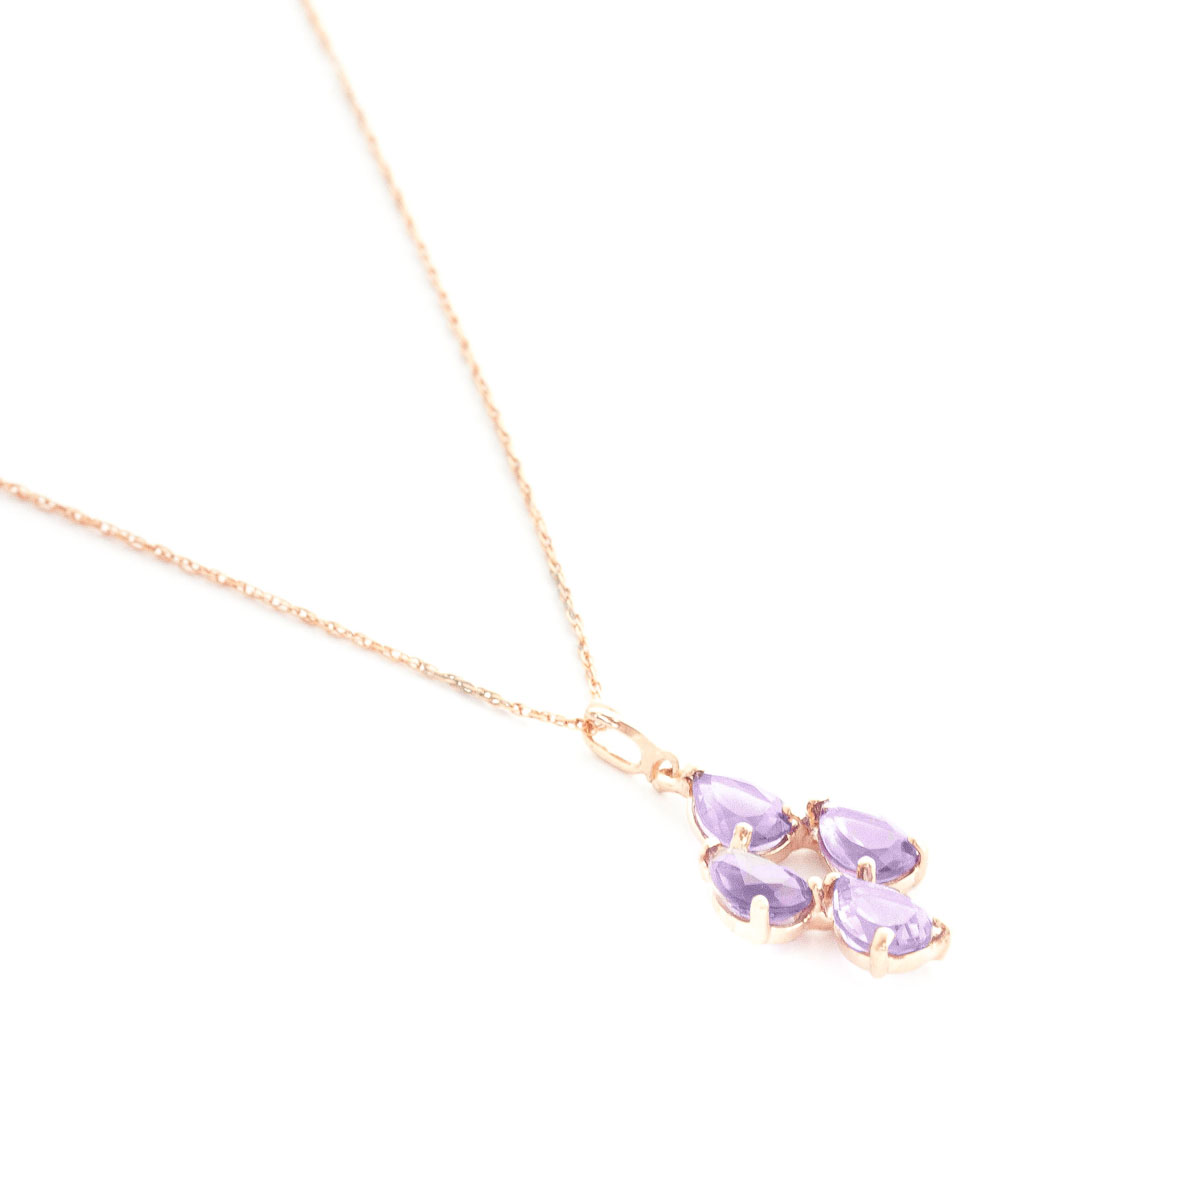 Amethyst Chandelier Pendant Necklace 1.5 ctw in 9ct Rose Gold